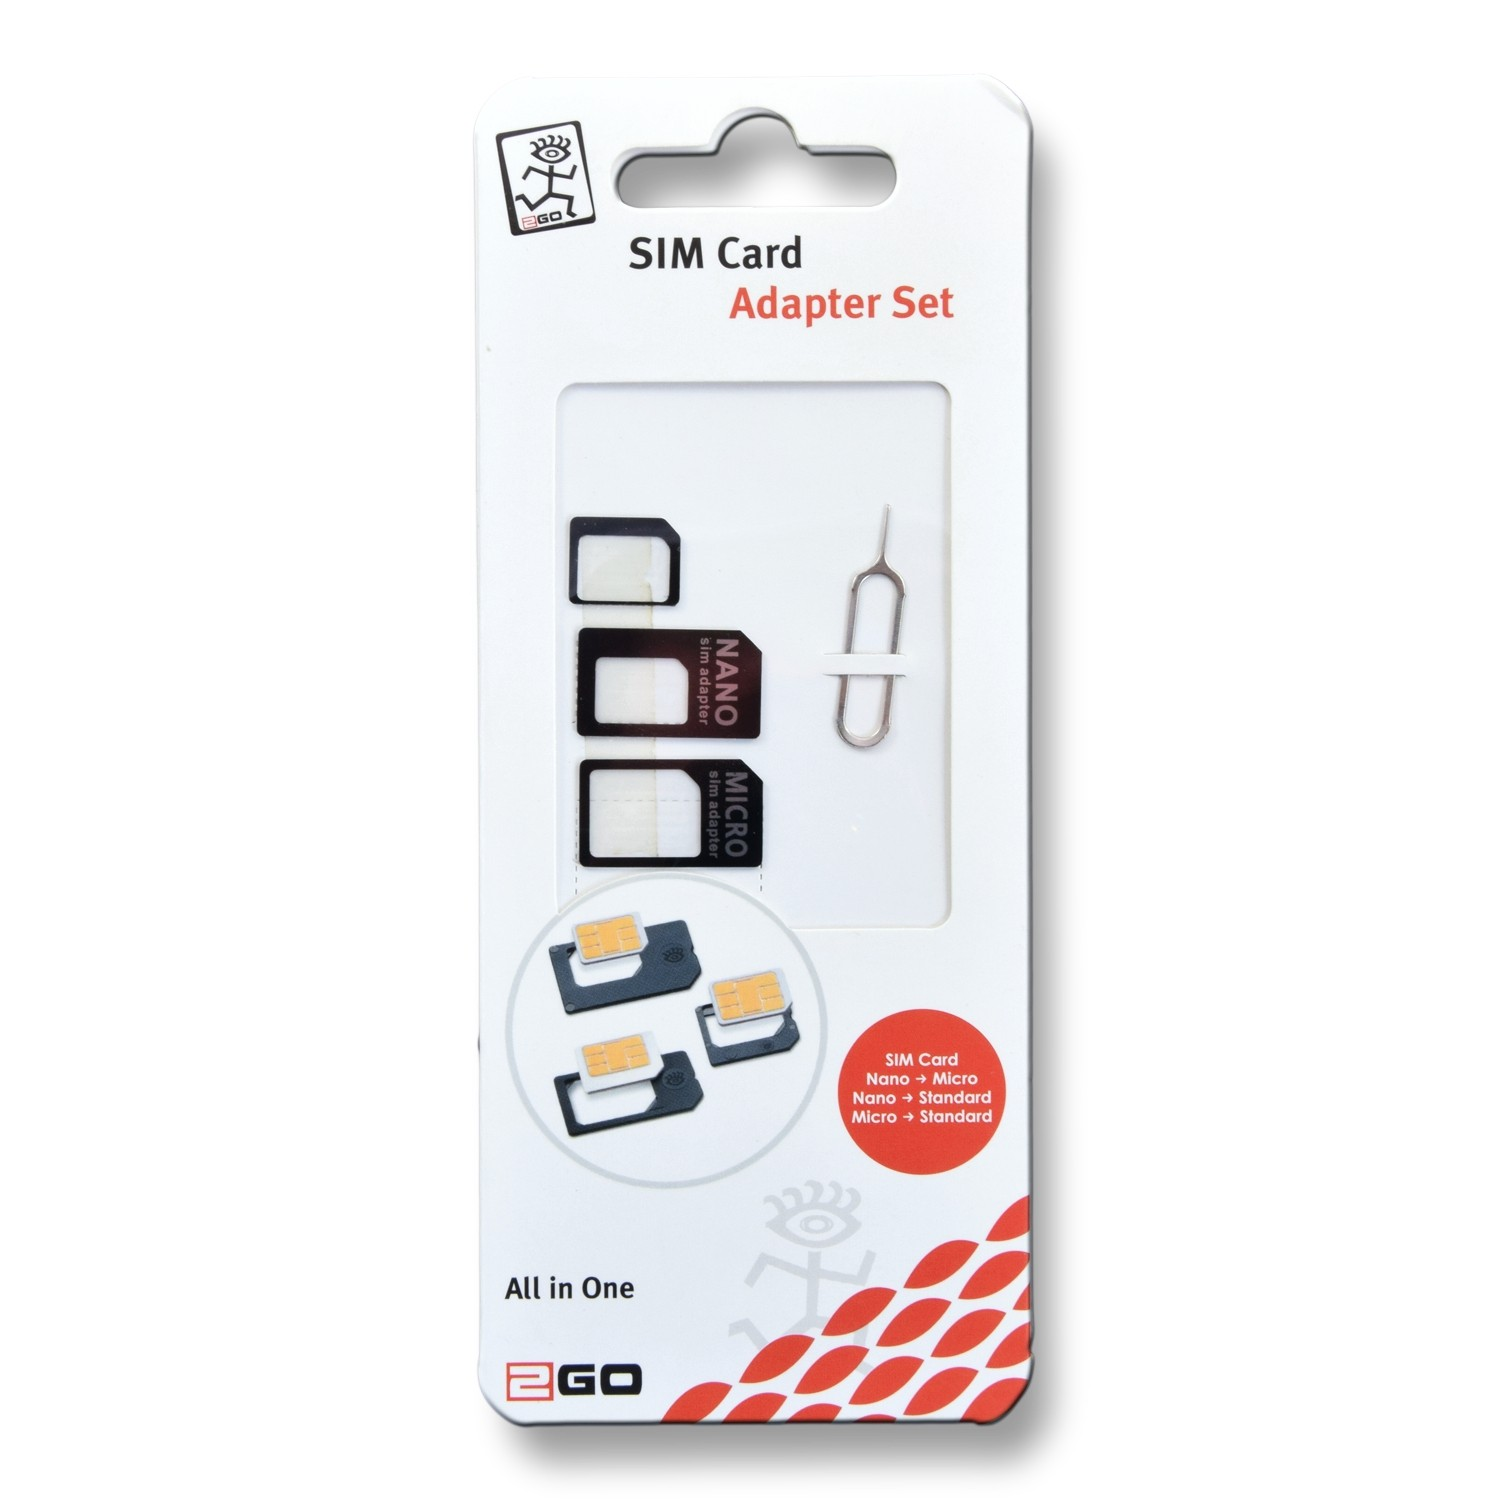 2GO SIM Card Adapter Set – Bild 2